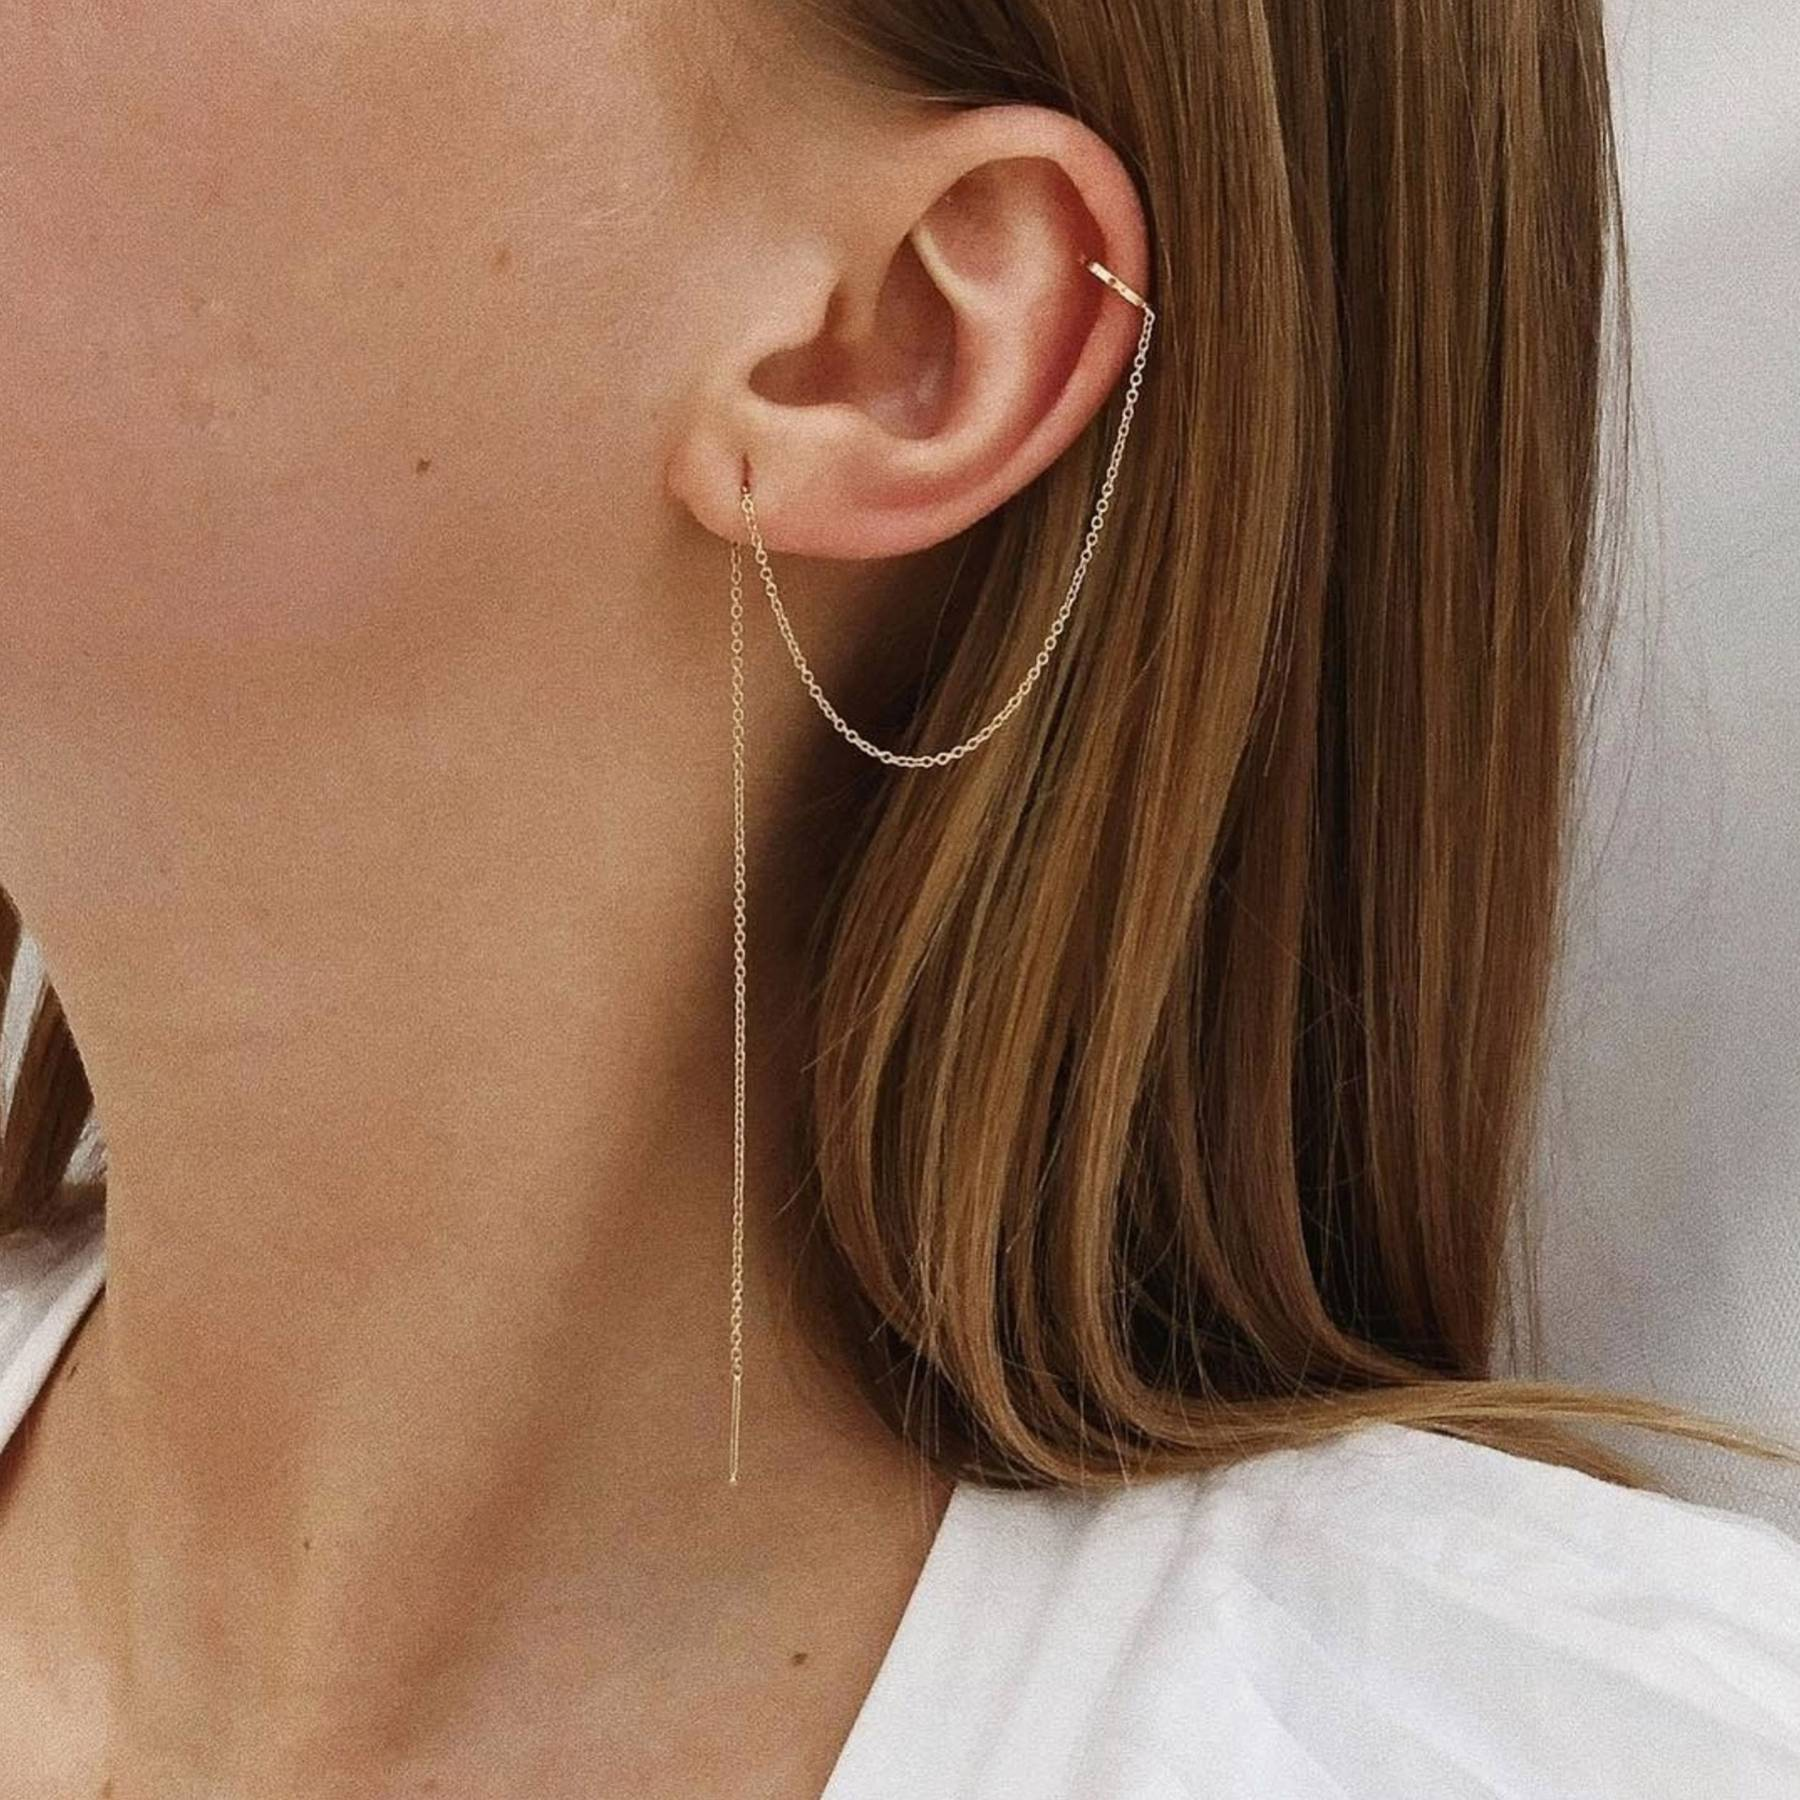 Different Types Of Ear Piercings And What They're Called